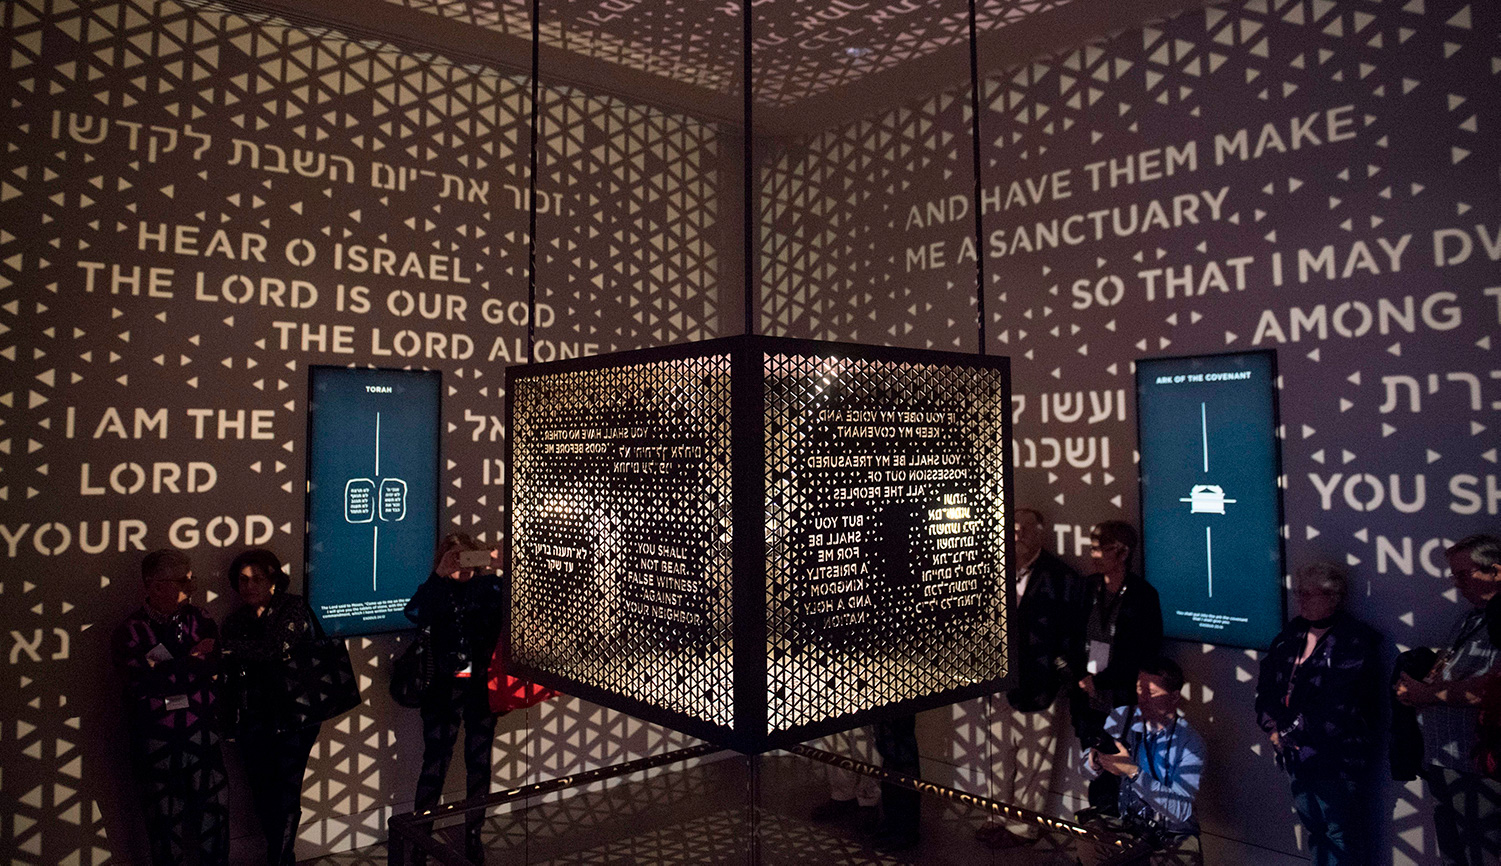 Visitors walk through the Ark of the Covenant exhibit at the new Museum of the Bible in Washington, D.C. SAUL LOEB/AFP/Getty Images.